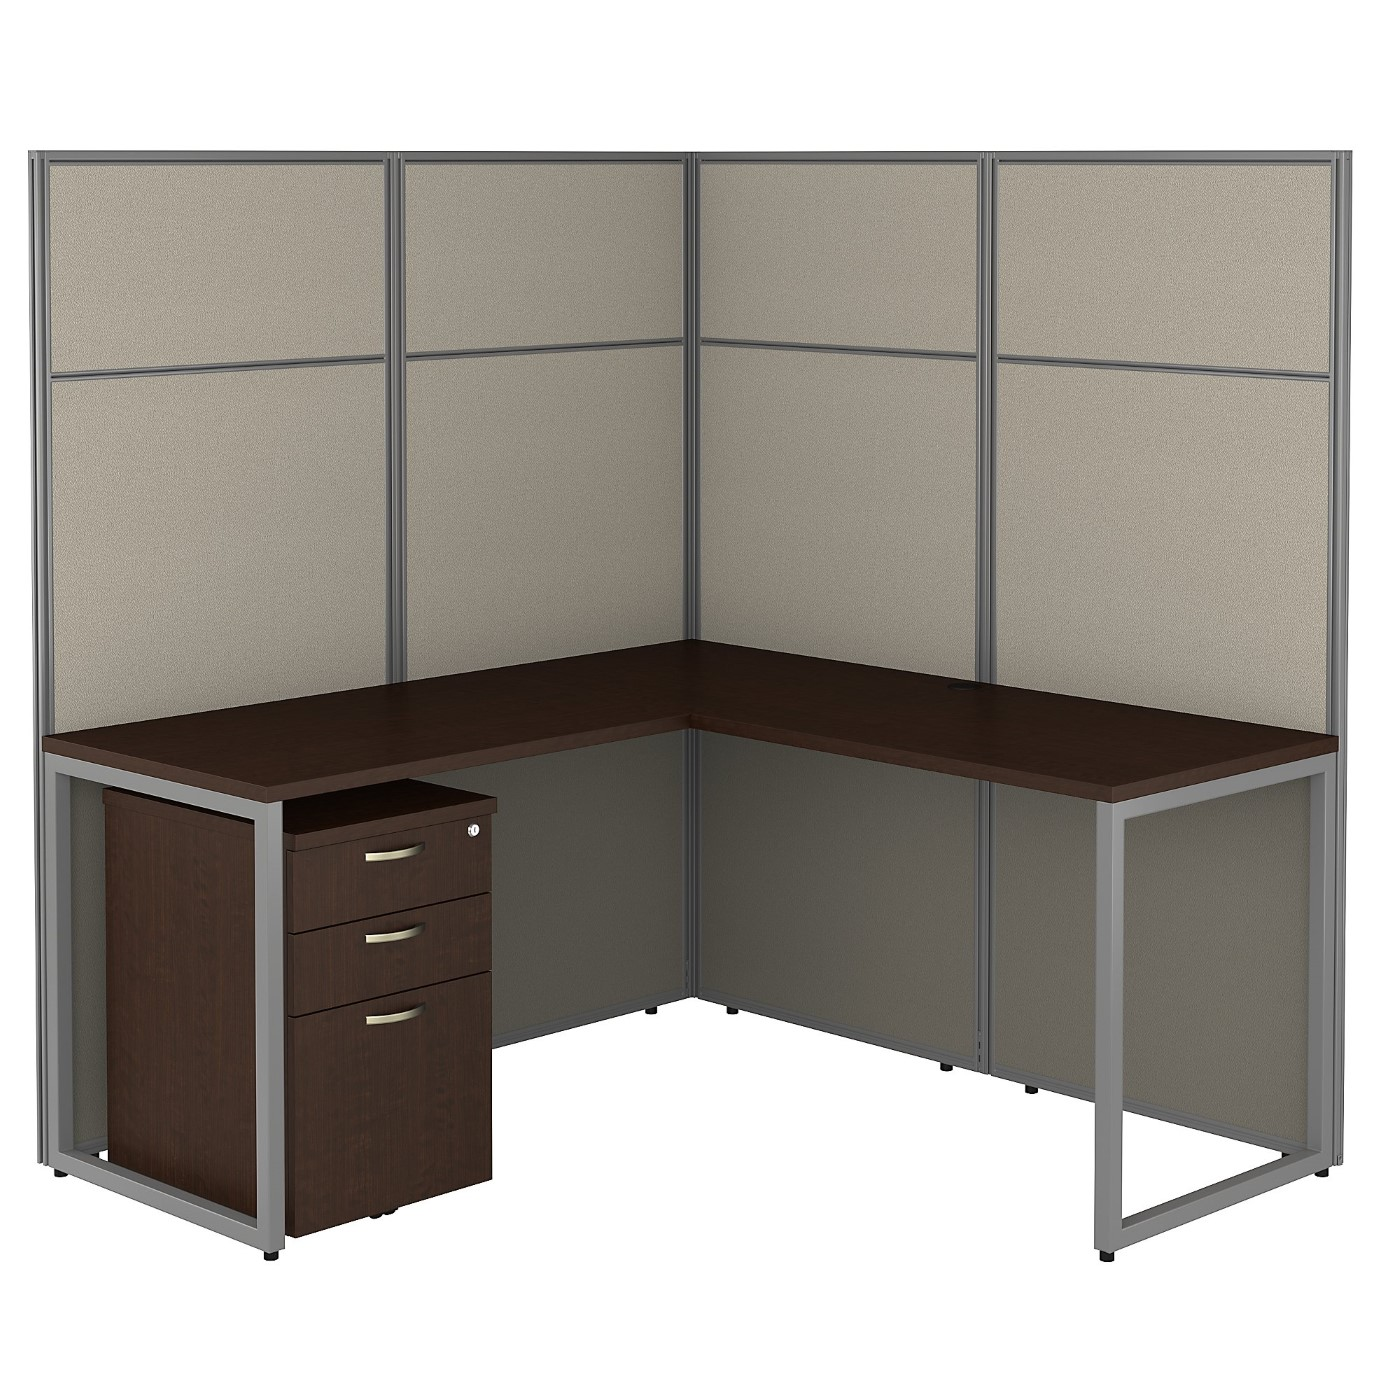 BUSH BUSINESS FURNITURE EASY OFFICE 60W L SHAPED CUBICLE DESK WITH FILE CABINET AND 66H PANELS. FREE SHIPPING 30H x 72L x 72W.  SALE DEDUCT 10% MORE ENTER '10percent' IN COUPON CODE BOX WHILE CHECKING OUT. ENDS 5-31-20.